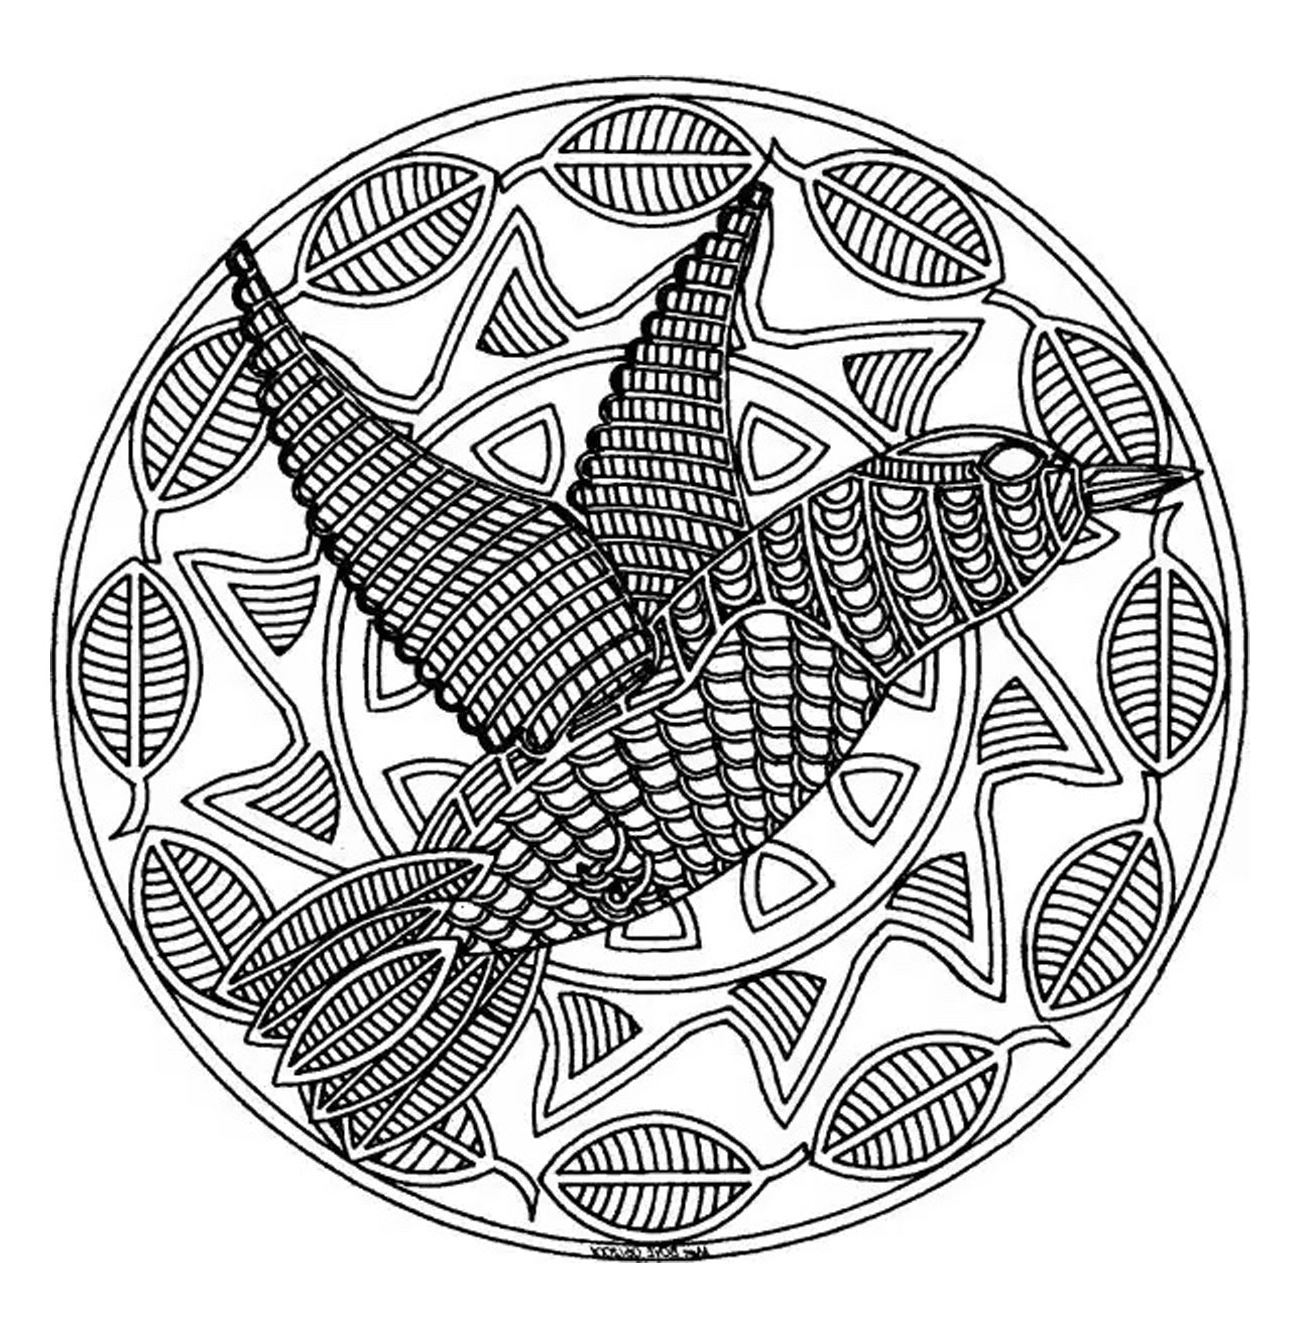 Cute Mandala drawing with a big bird in the middle. Don't hesitate to share the result with us by sending it !